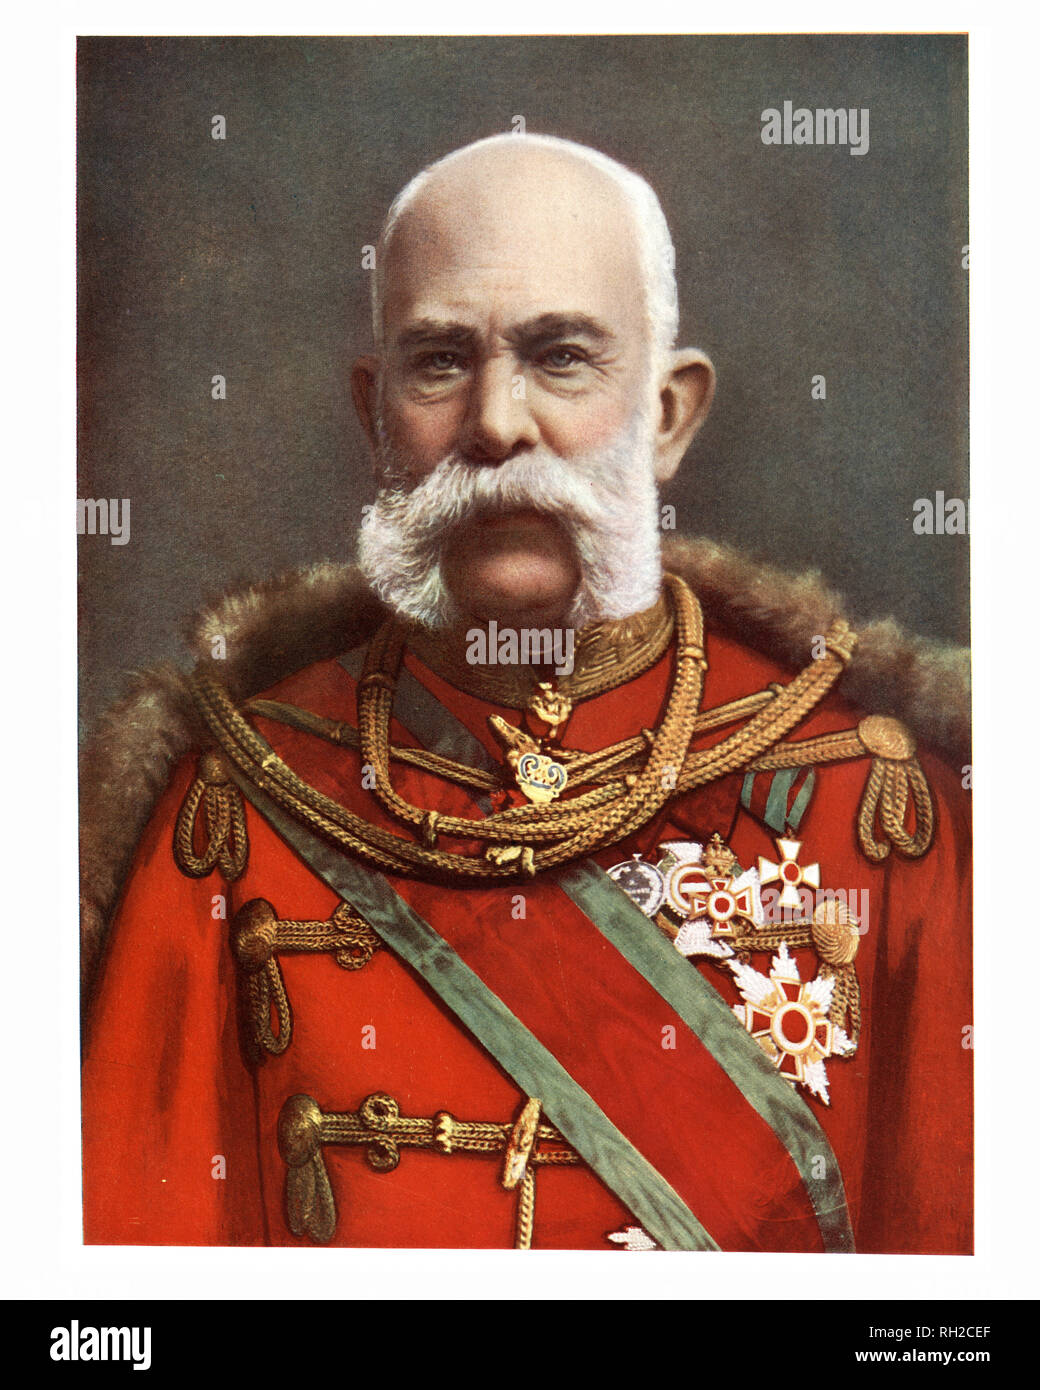 Franz Joseph I or Francis Joseph I (18 August 1830 to 21 November 1916) was Emperor of Austria, King of Hungary, and monarch of many other states of the Austro-Hungarian Empire - Stock Image